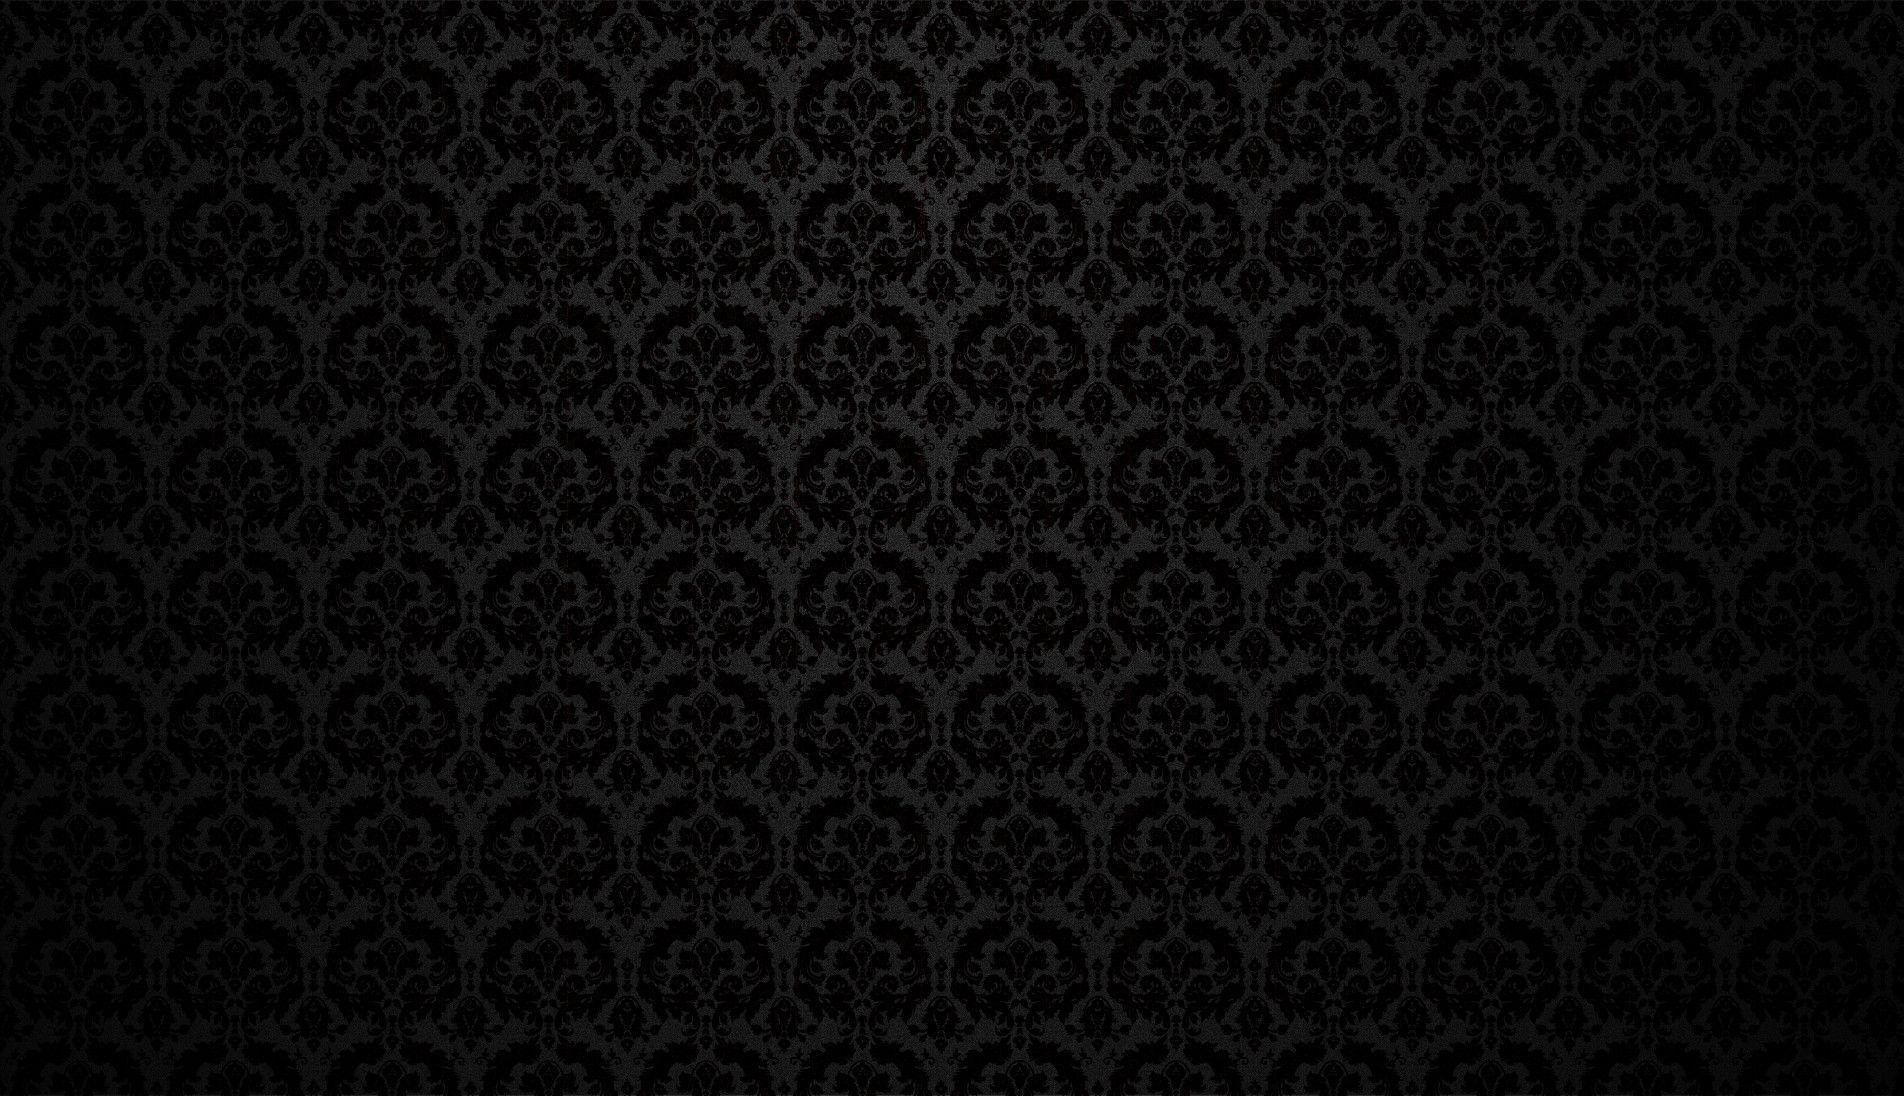 Black Velvet Background : Damask desktop wallpapers wallpaper cave